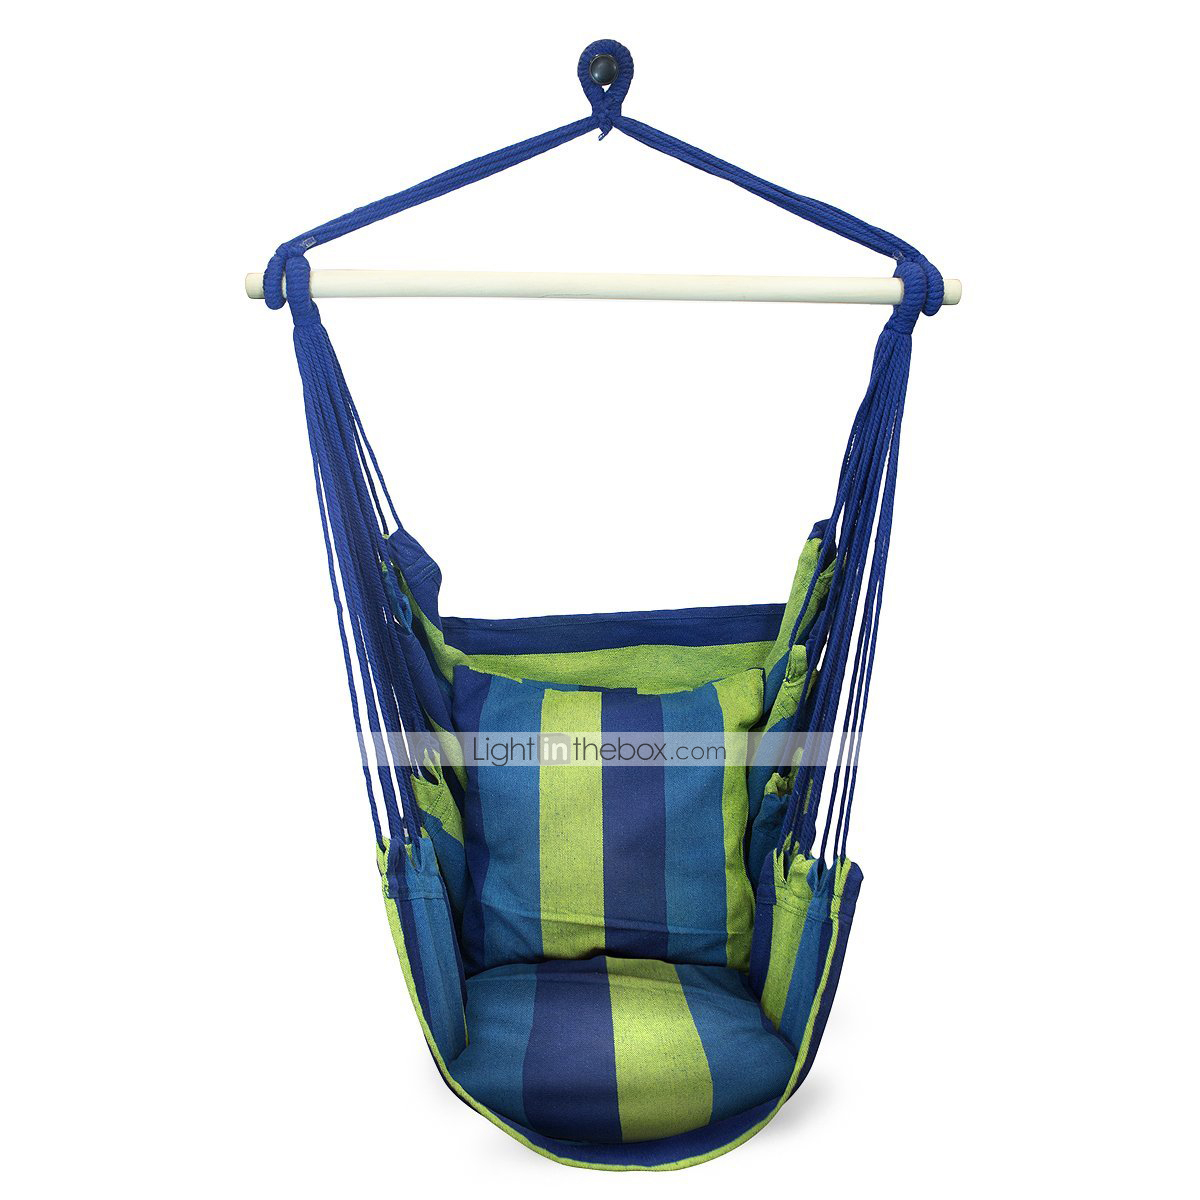 SWIFT Outdoor Portable Cottton Stripe Swing Outdoor